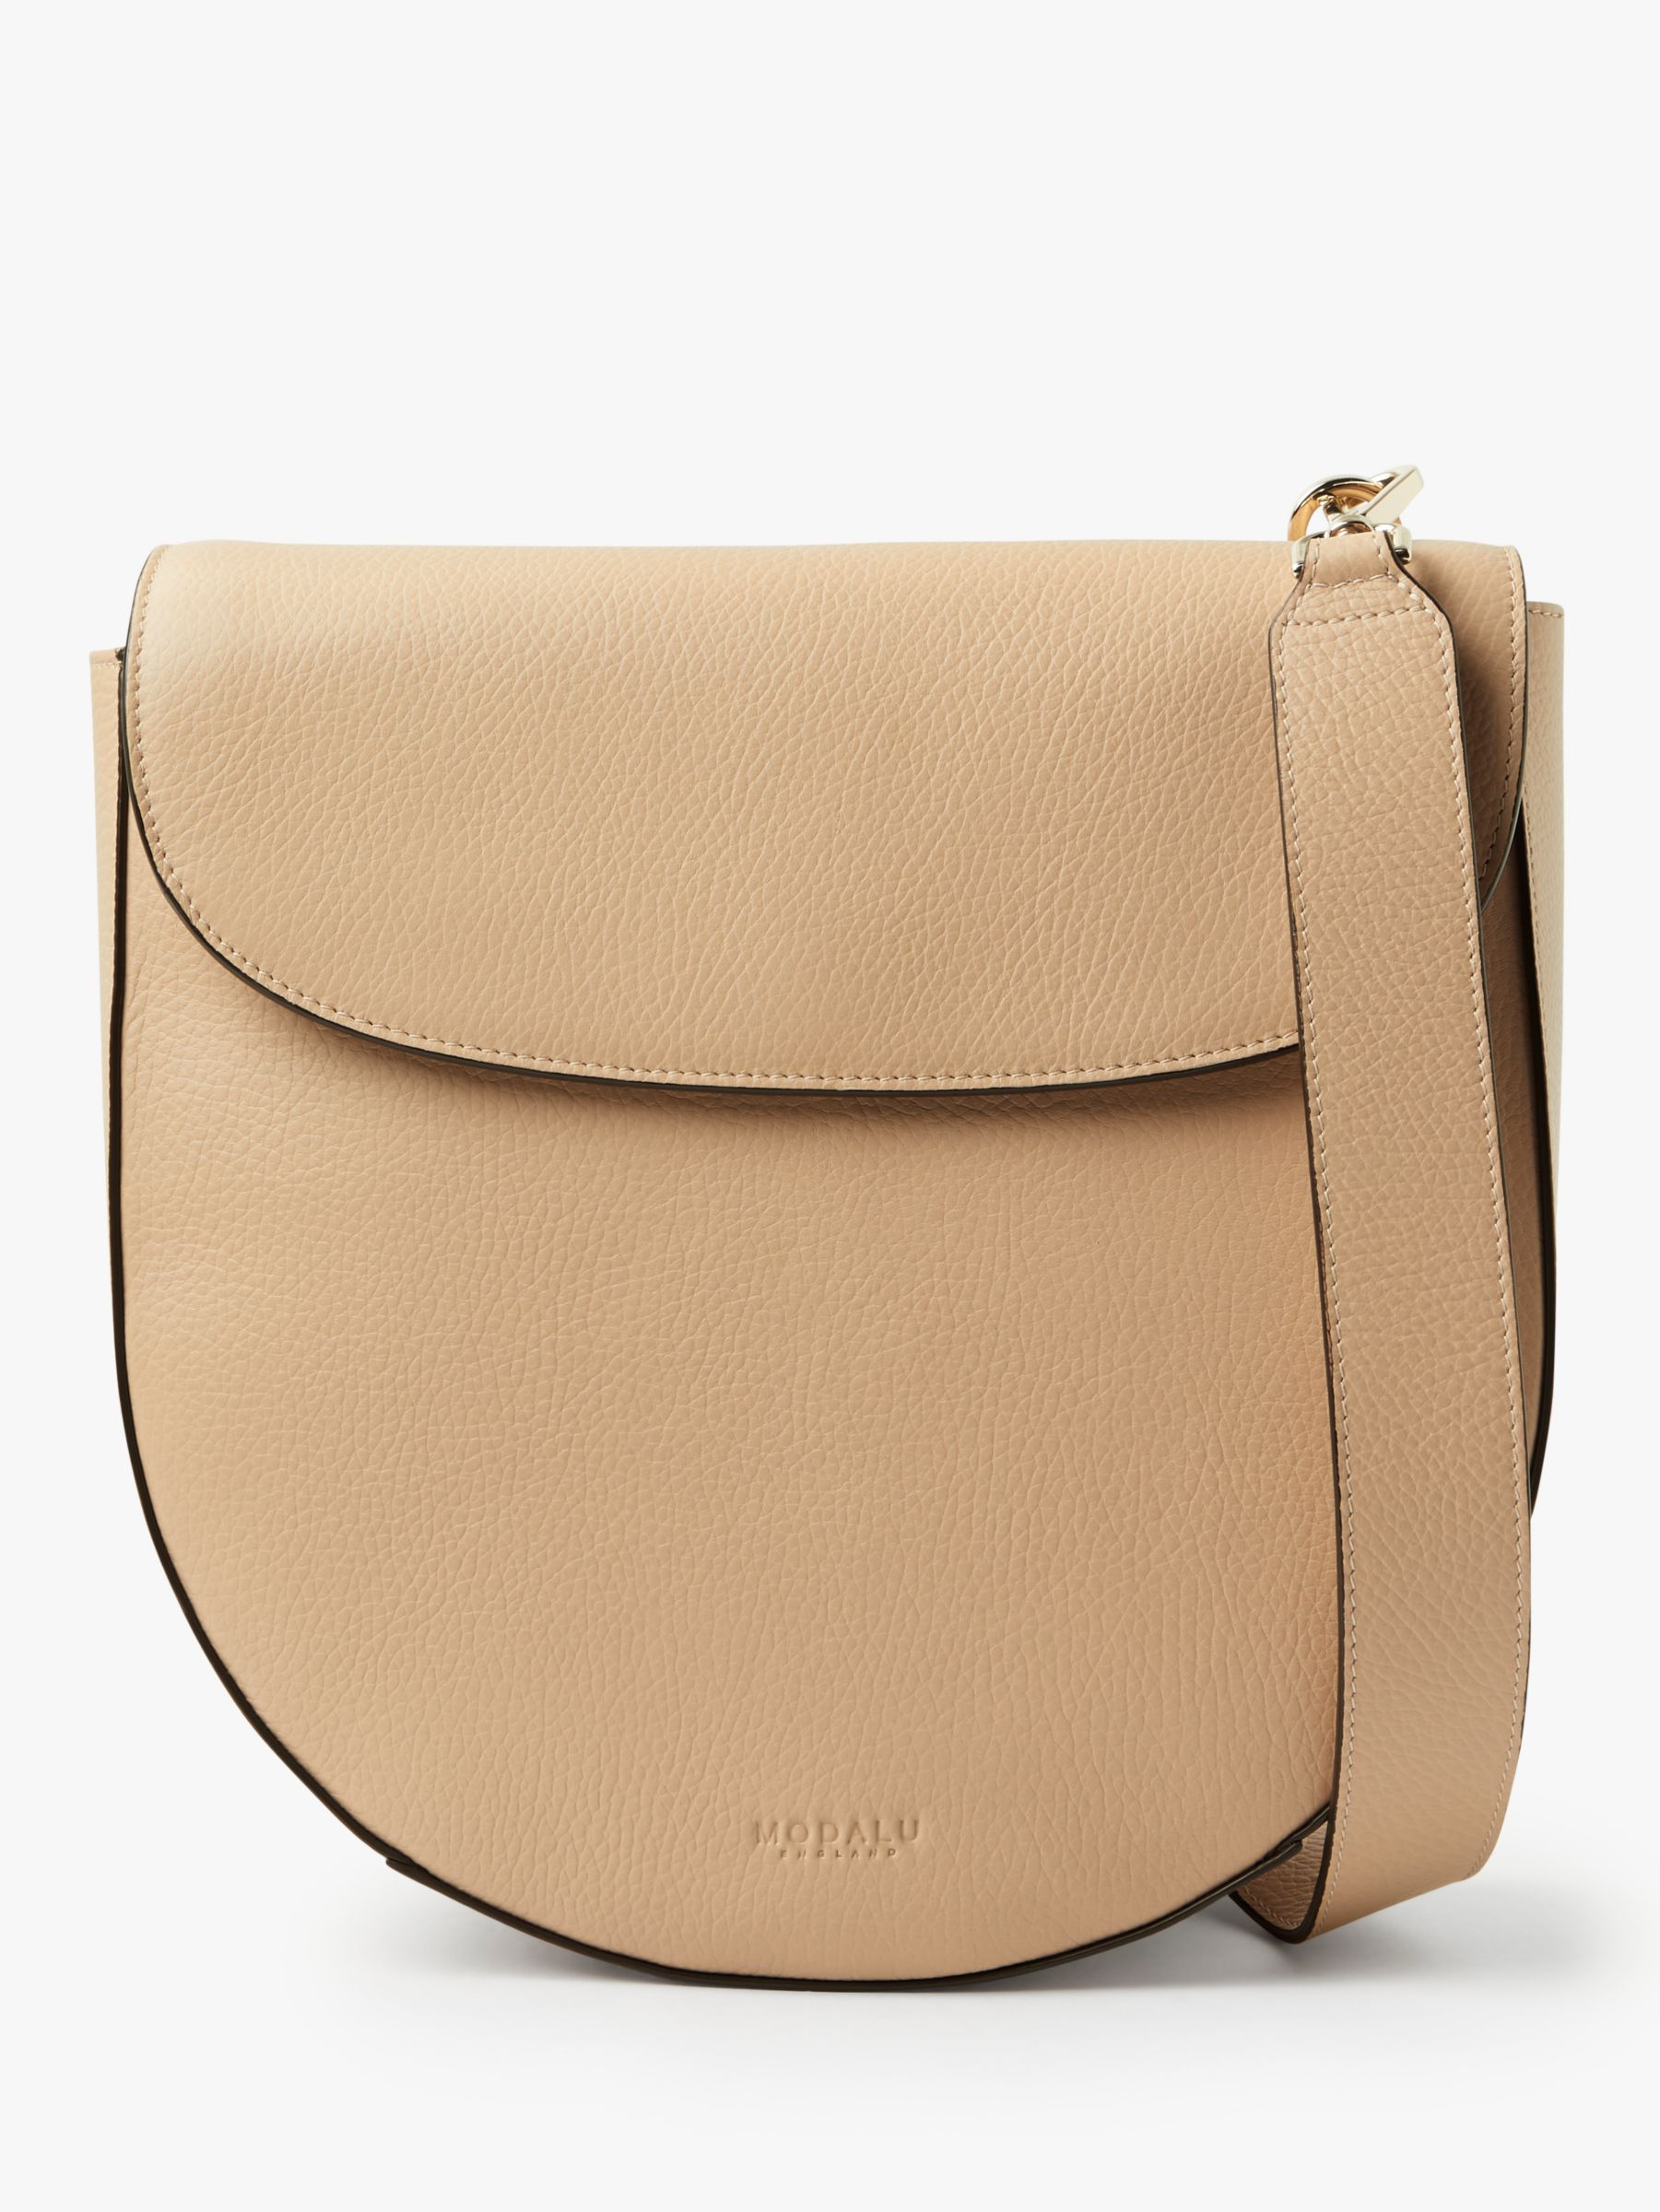 Modalu Modalu Sofia Leather Shoulder Bag